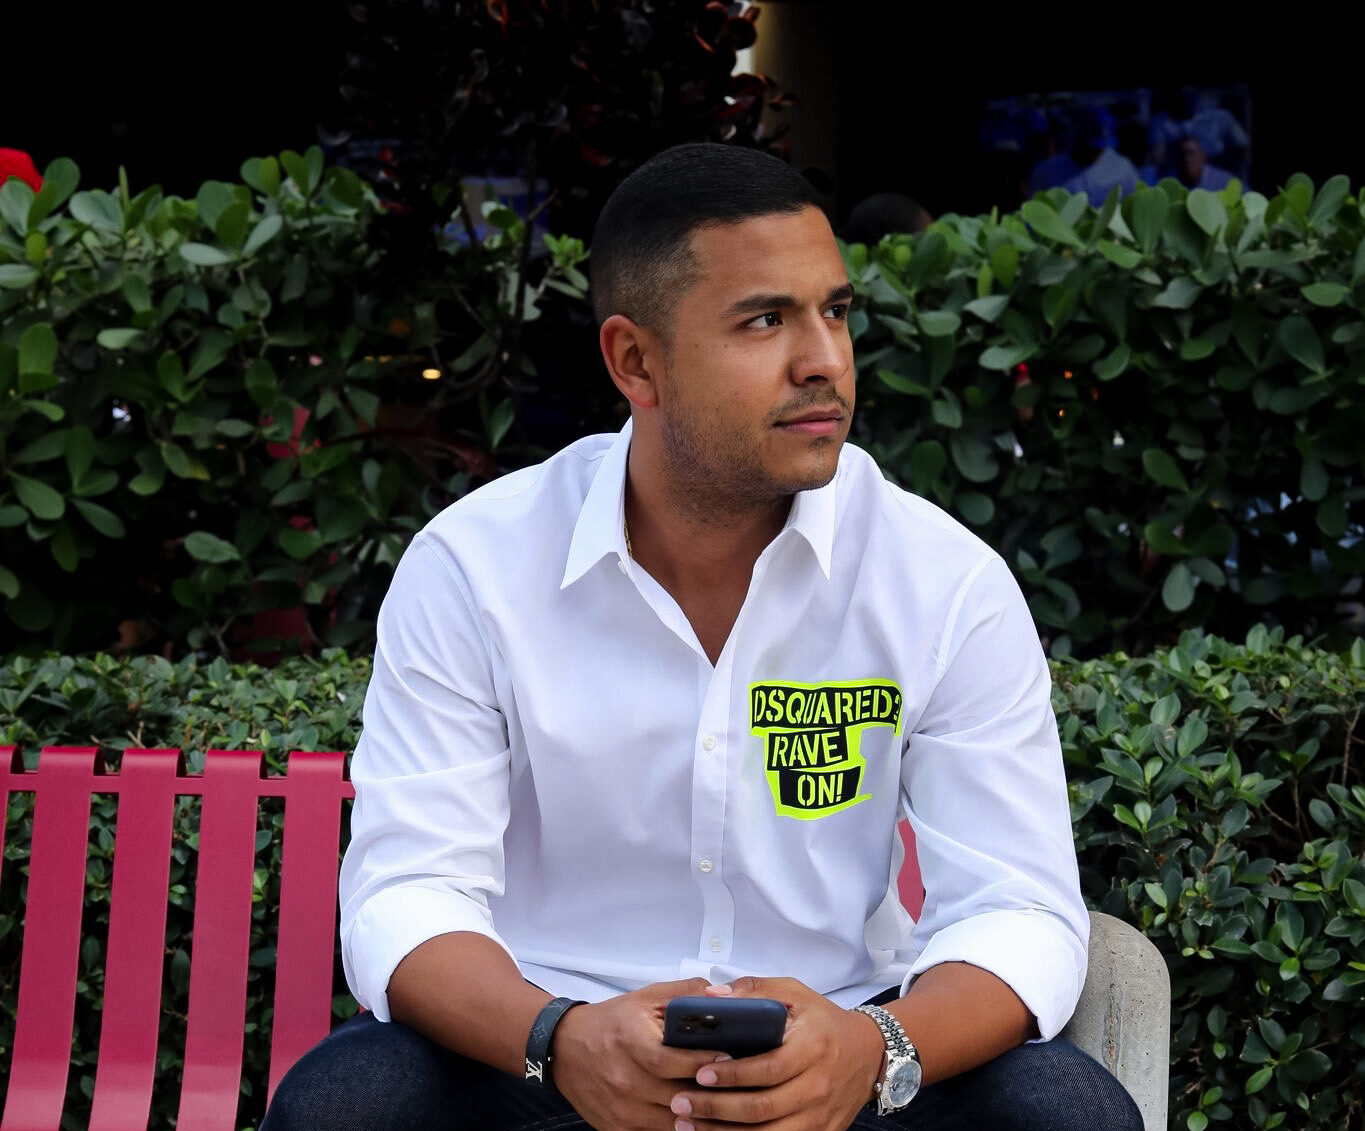 Meet Lenin J. Perez: A Serial Entrepreneur Destined To Leave A Legacy For Others To Follow